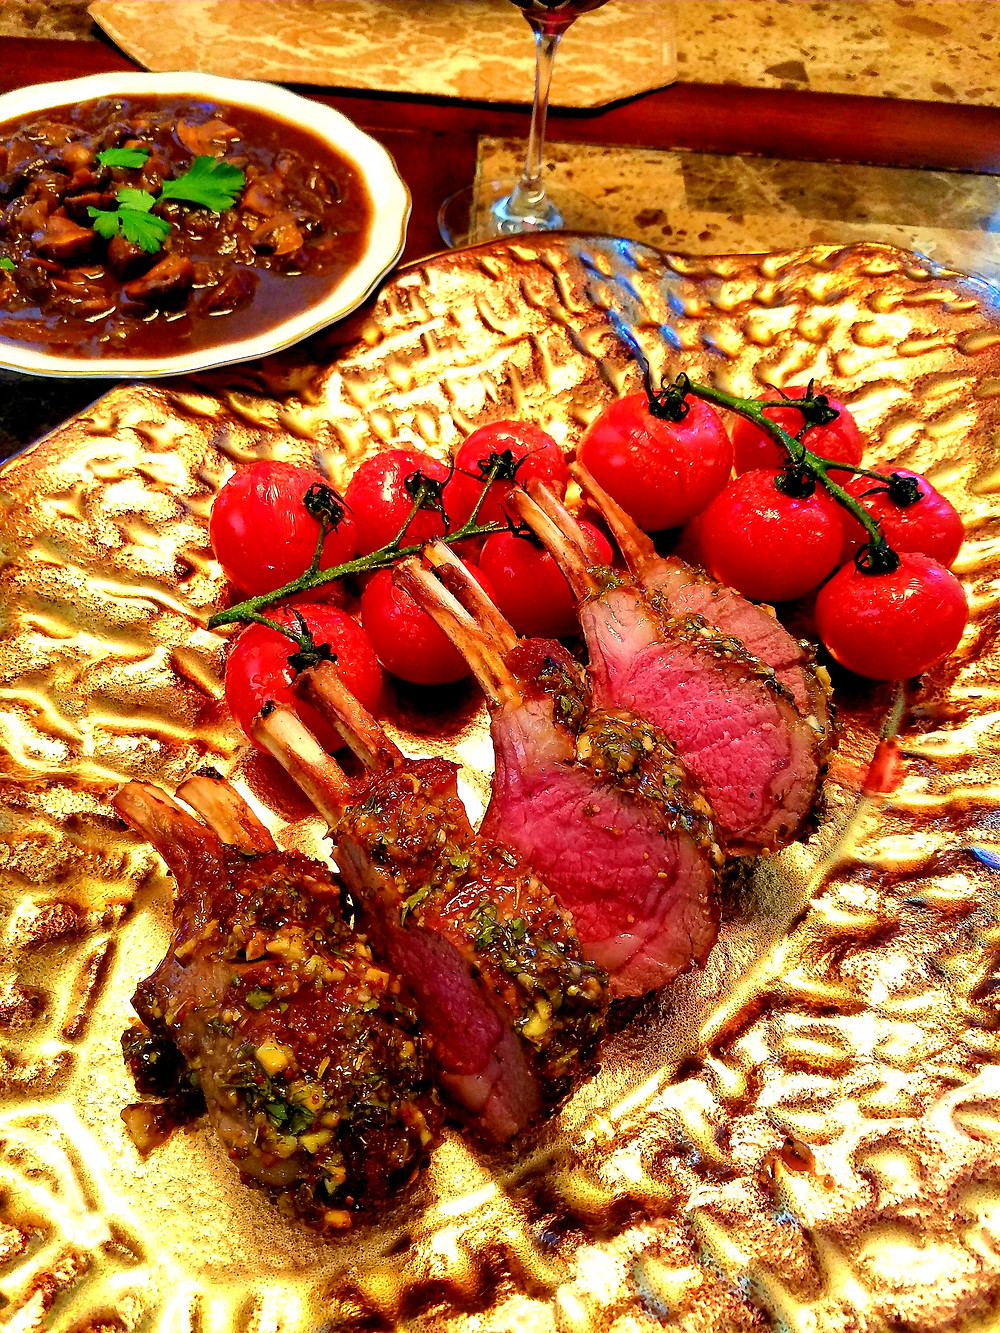 Rack of Lamb with Garlic & Herbs (Gluten-free, no soy/dairy/grains)